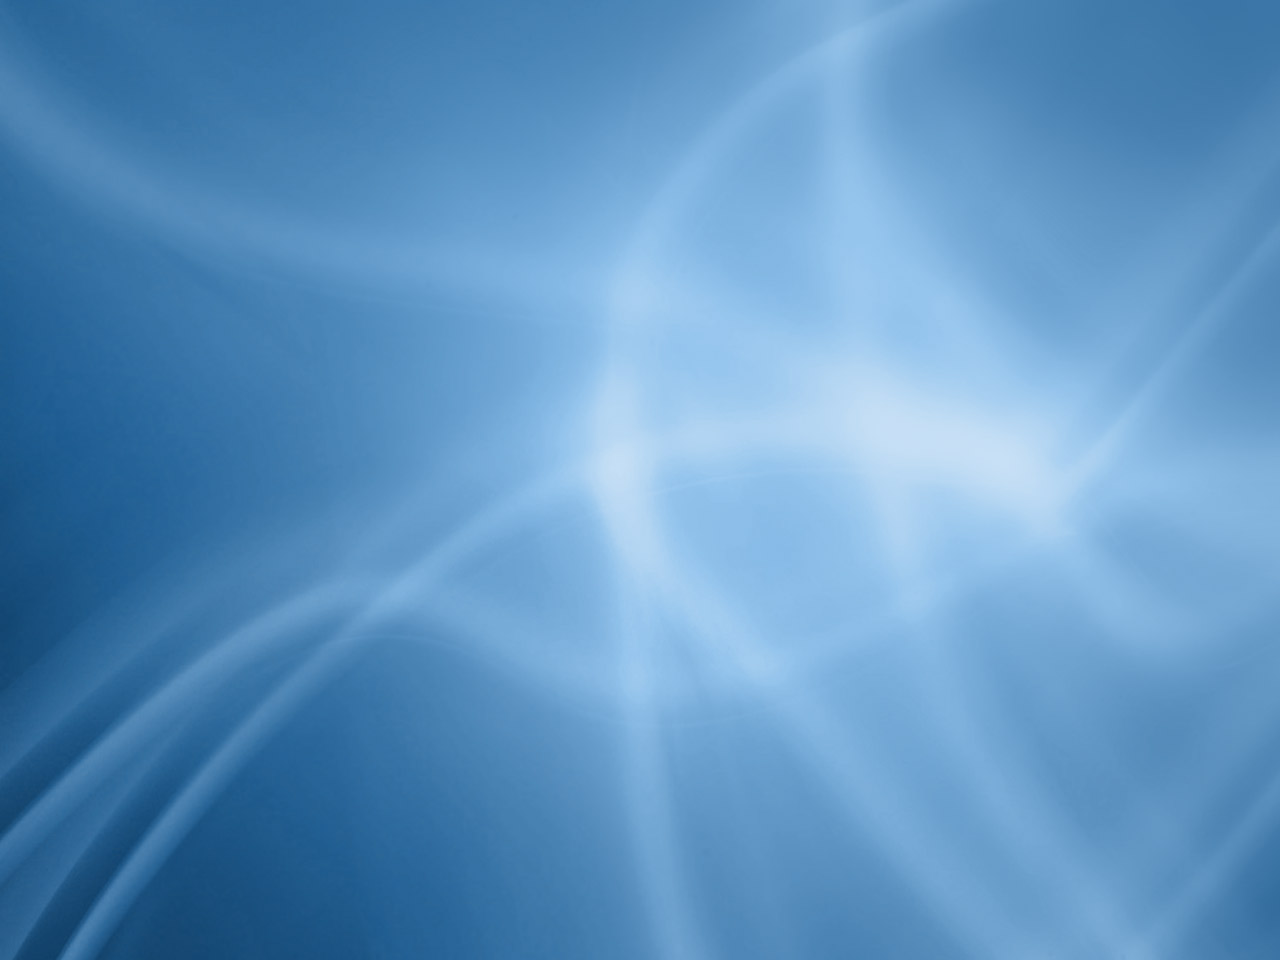 abstract_background_blue